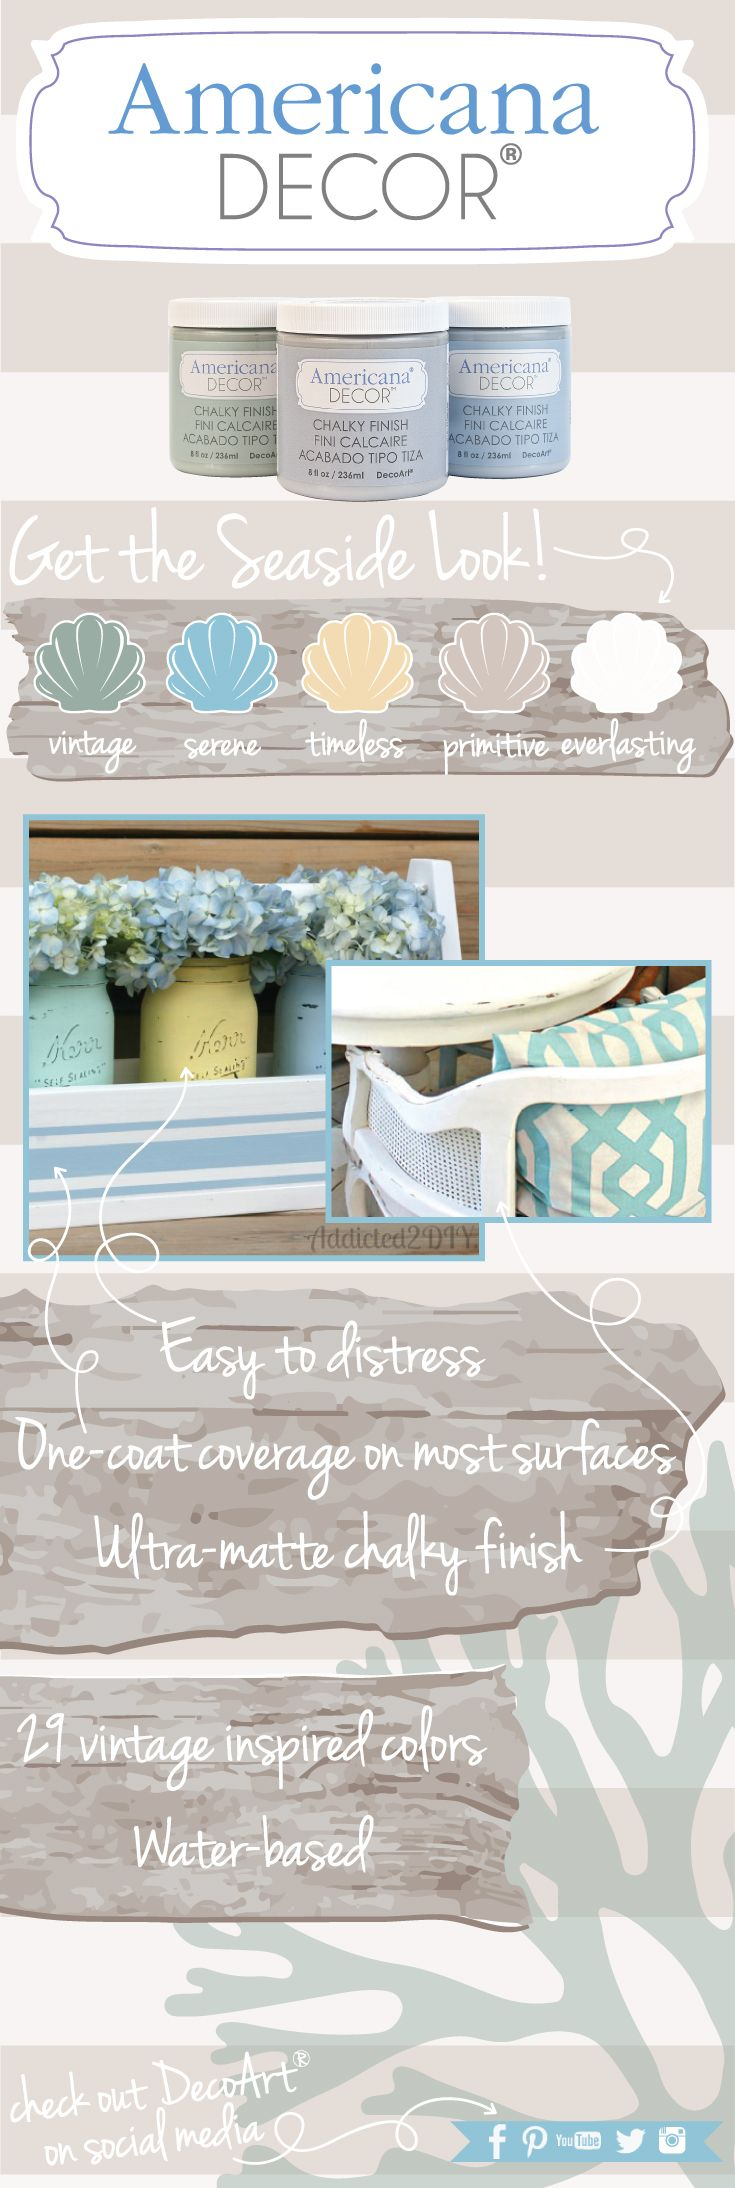 Use Americana Decor Chalky Finish to achieve a seaside look to bring the magic of your beach vacation into your home.